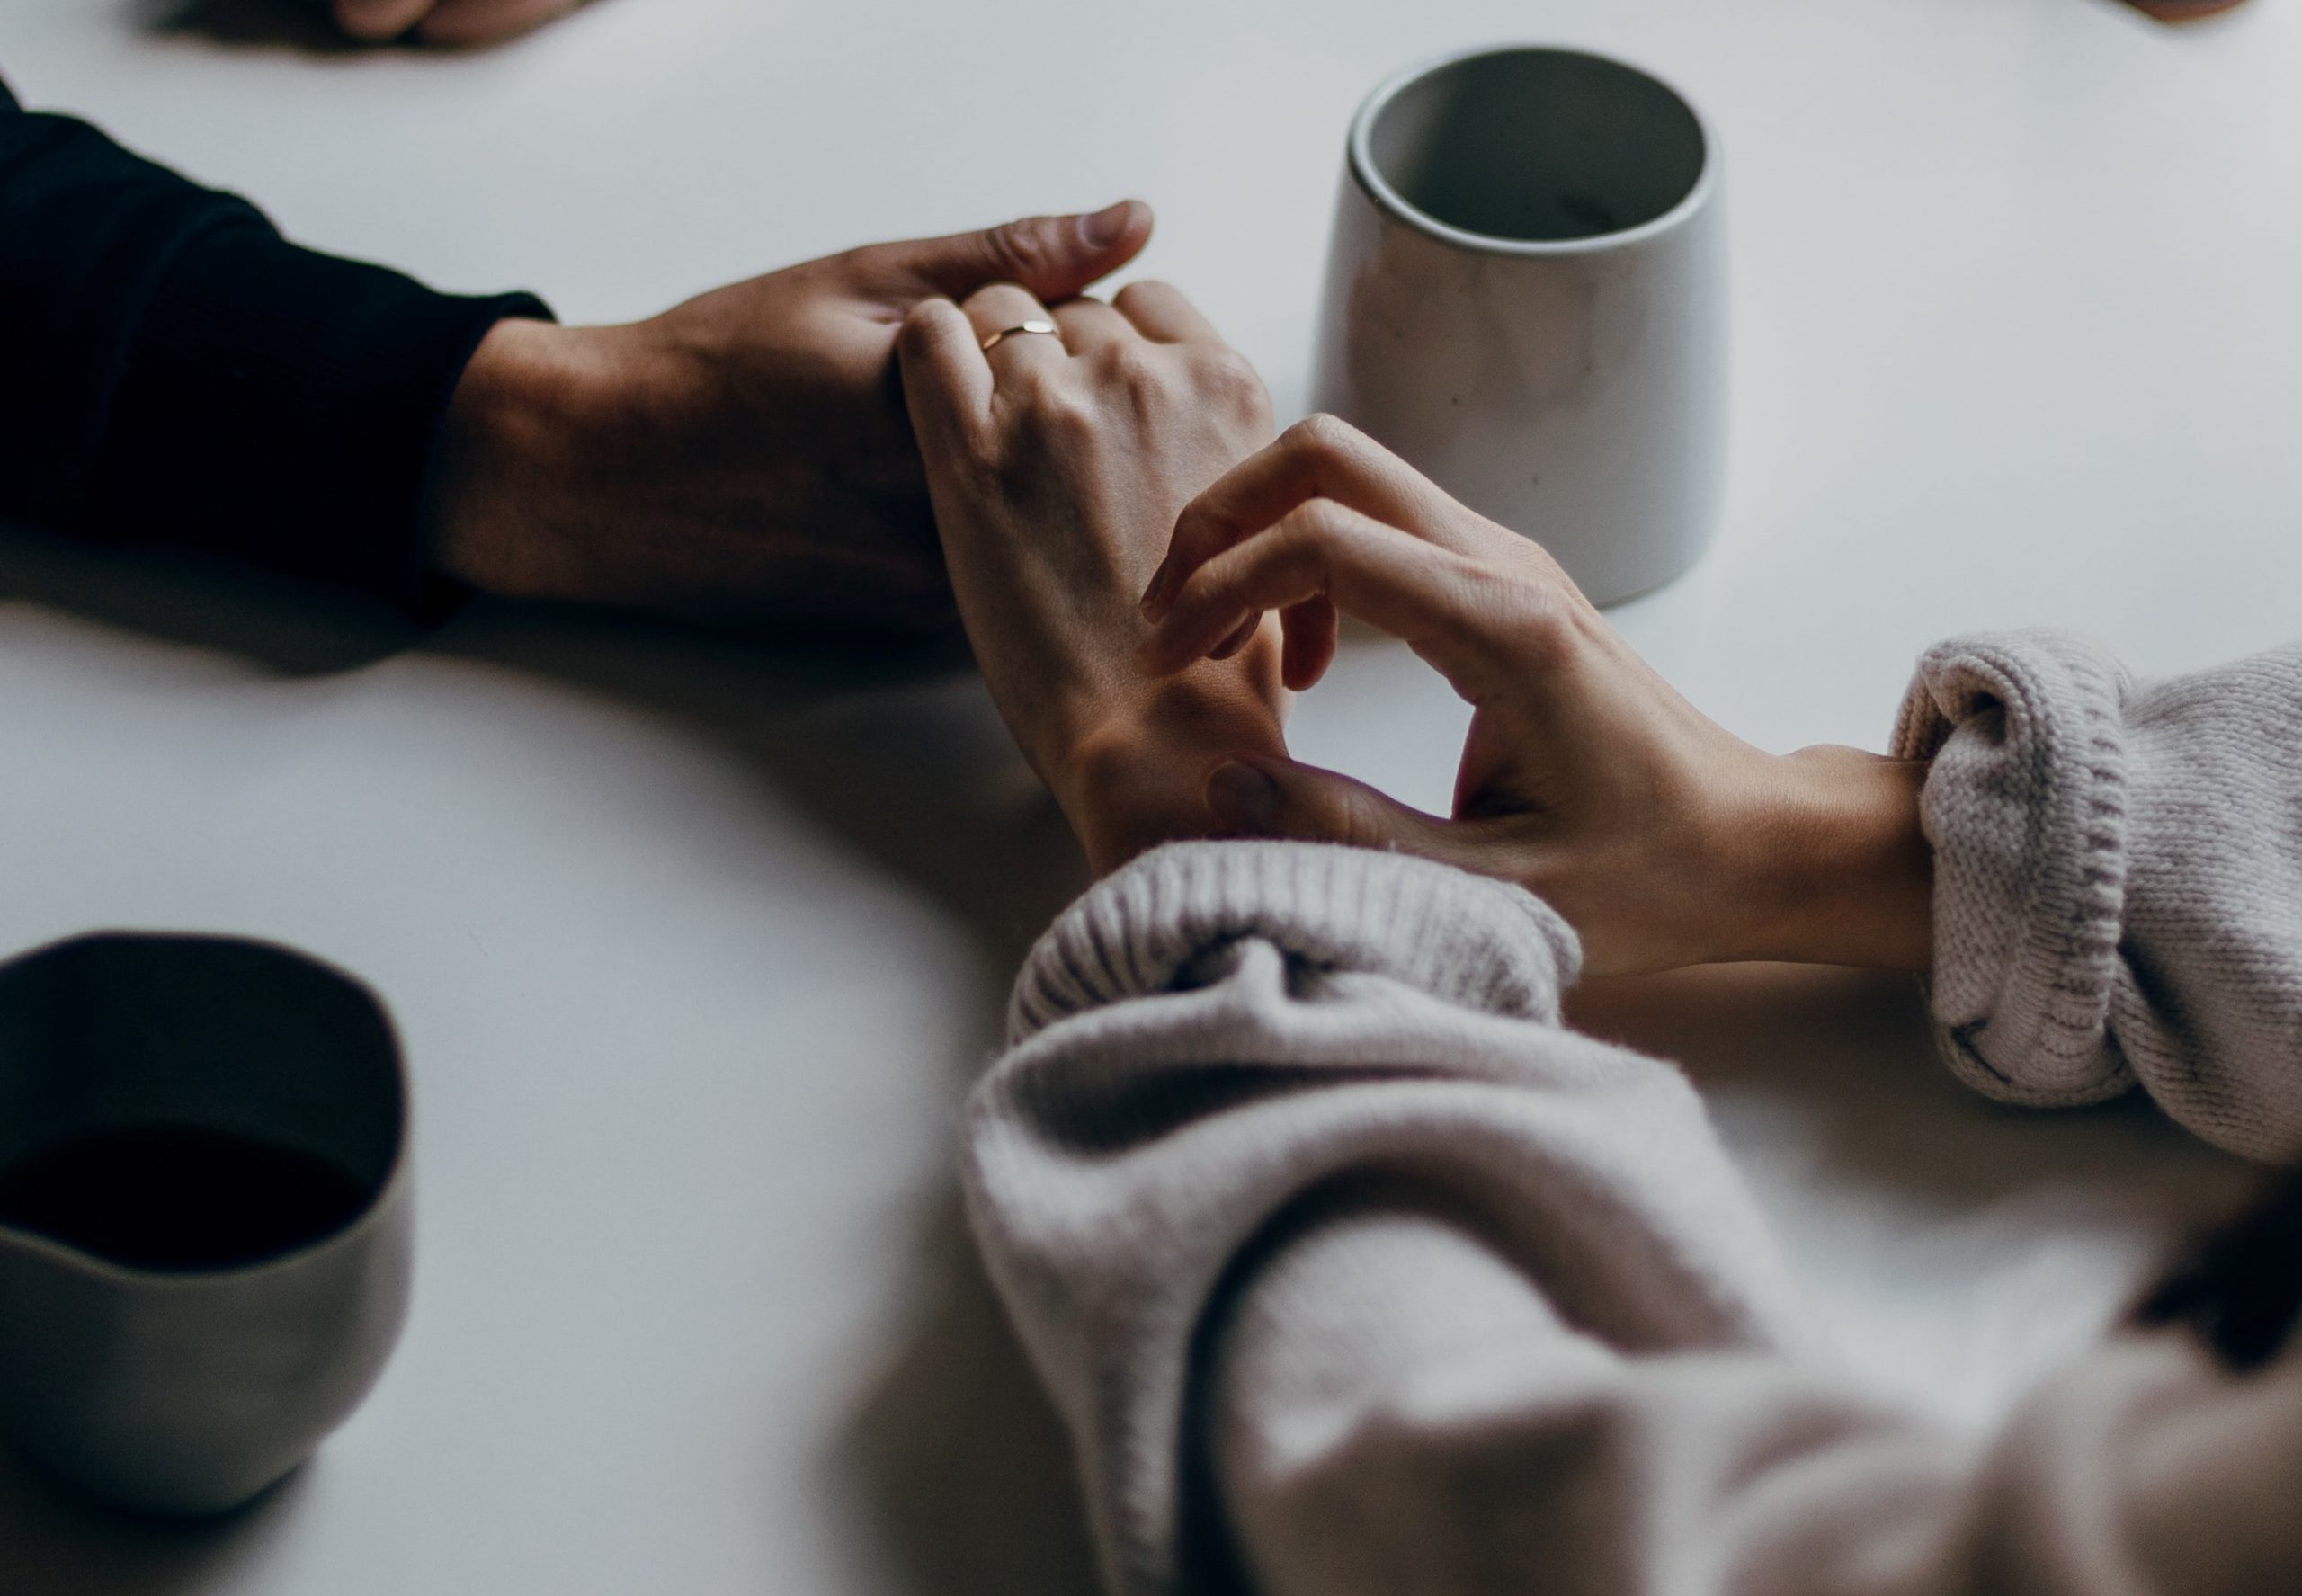 two people holding hands on a table with mugs on it